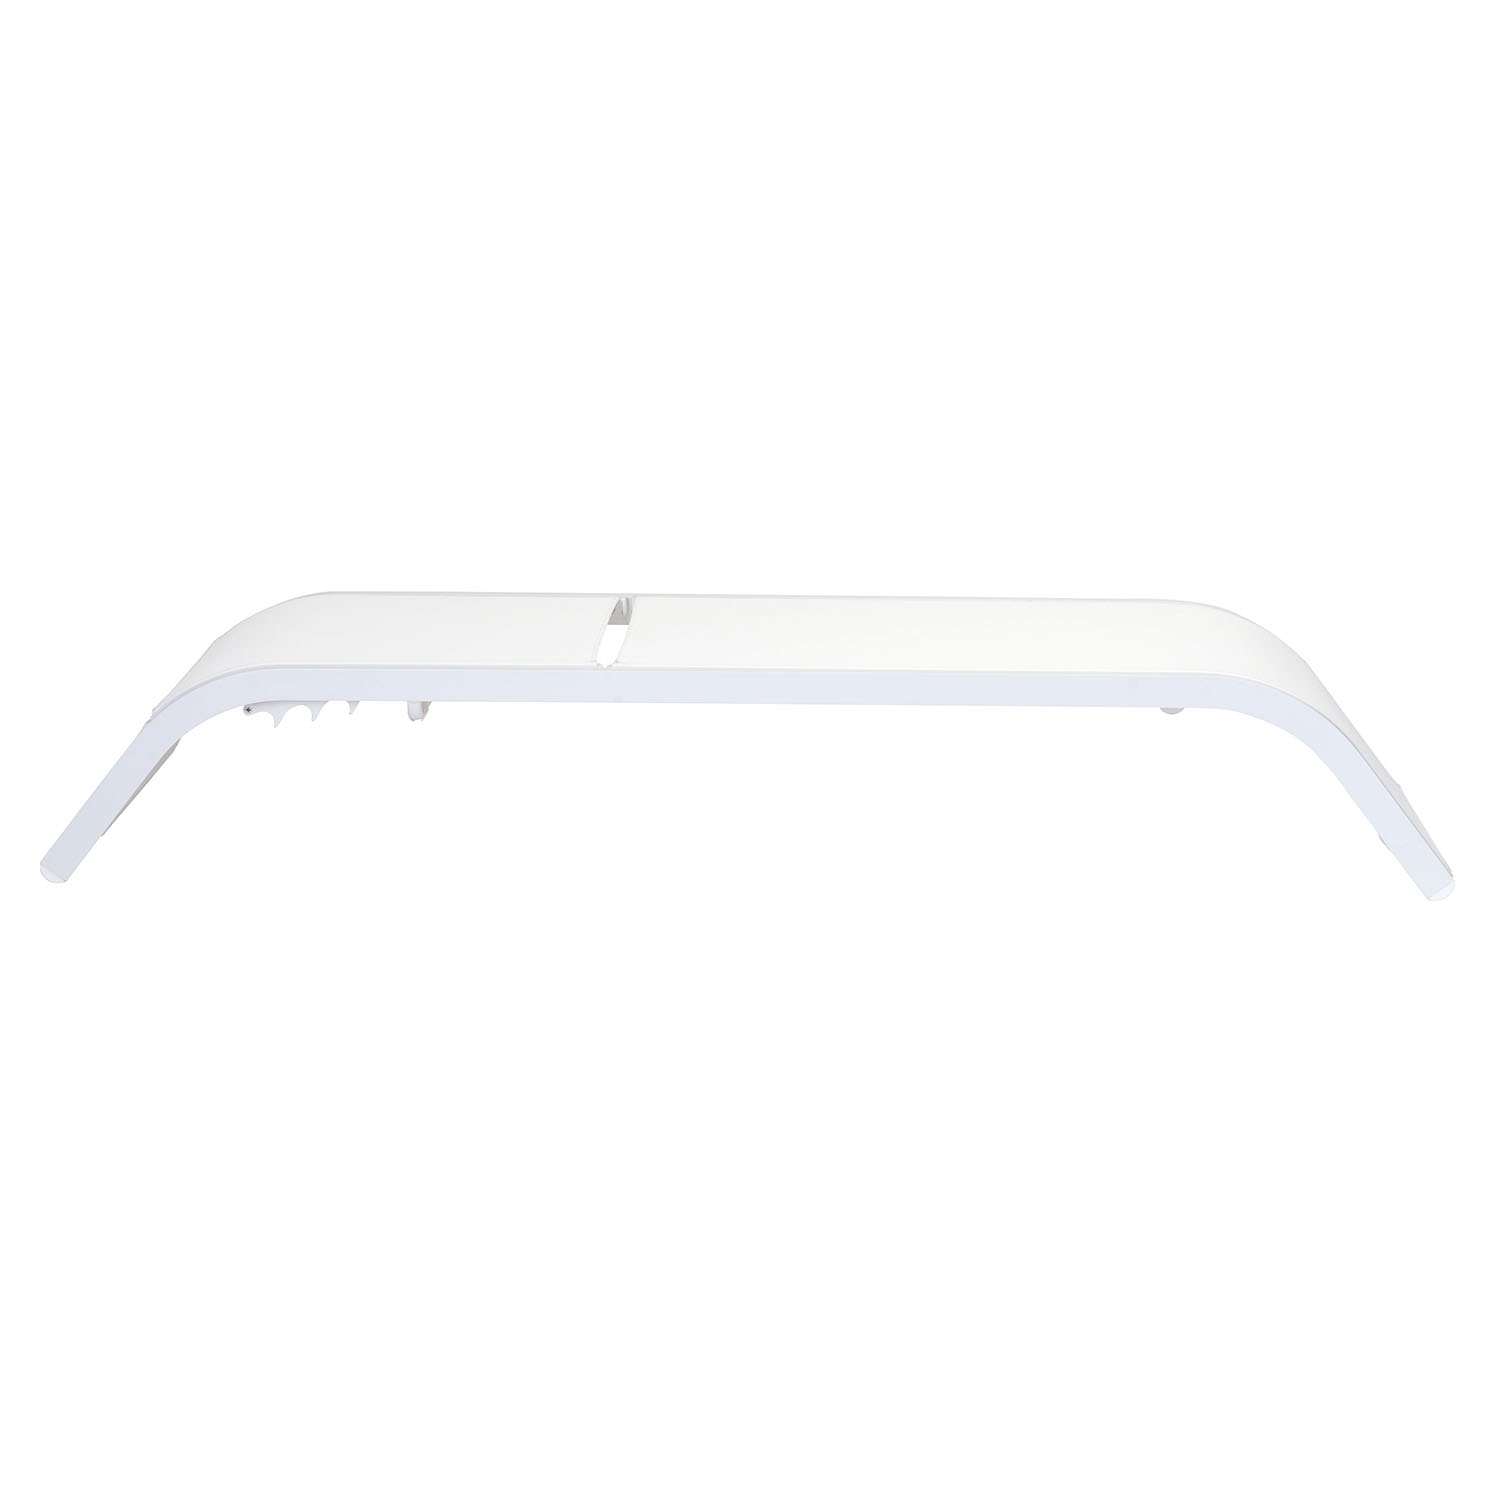 Sun Beach Chaise Lounge - White - ZM-703586